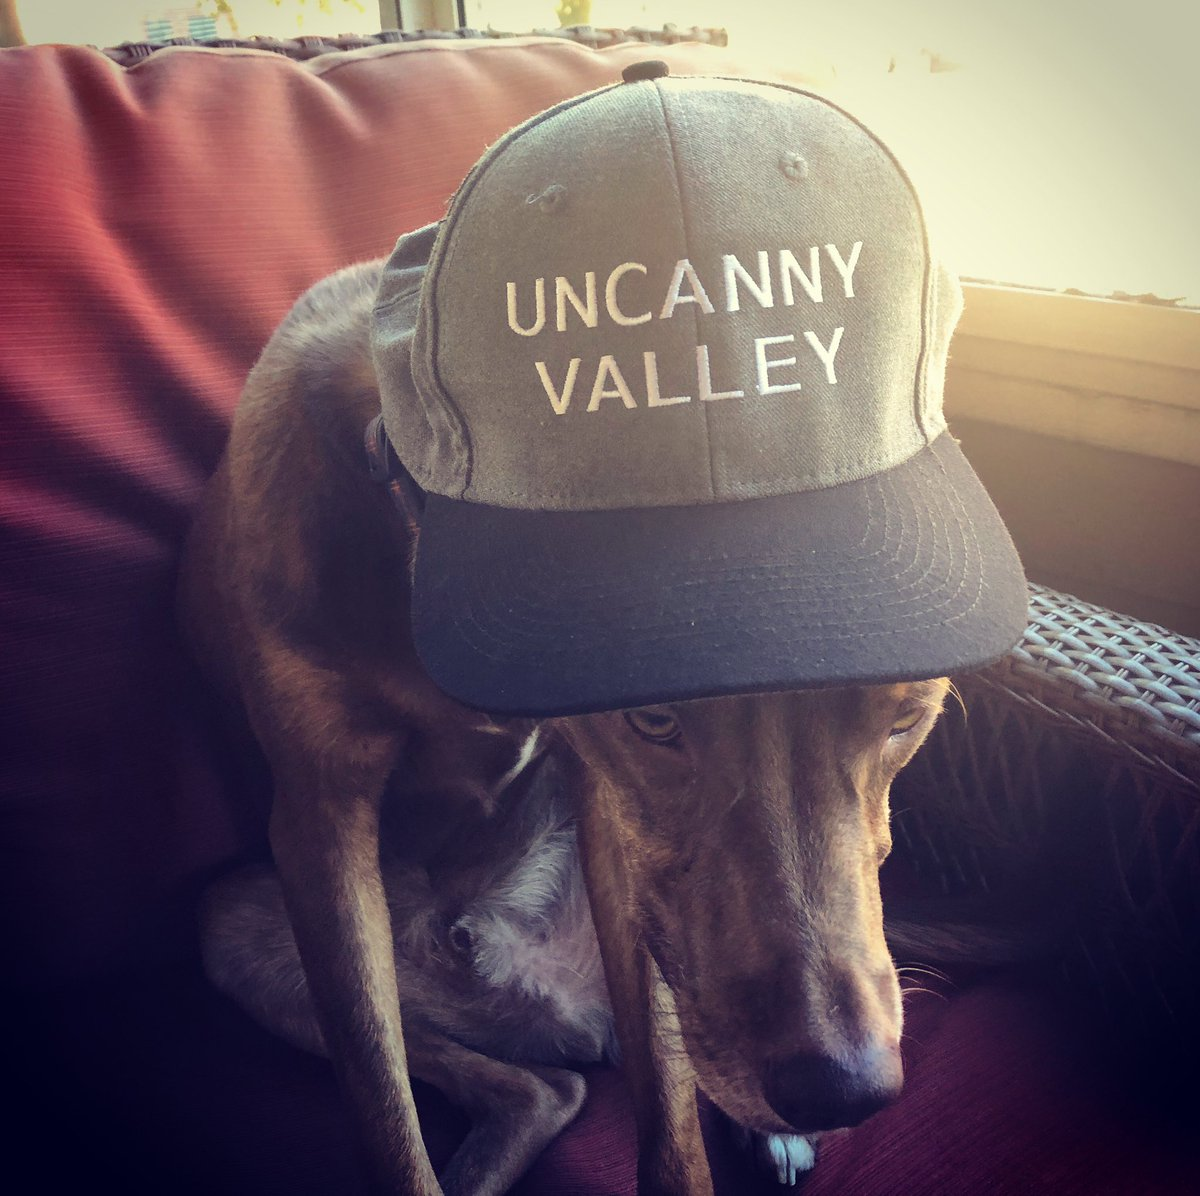 Scooter doesn't like wearing my hat.  @TheOnyxPath #UncannyValley #dogsoftwitter https://t.co/oCUmGuG6Kw